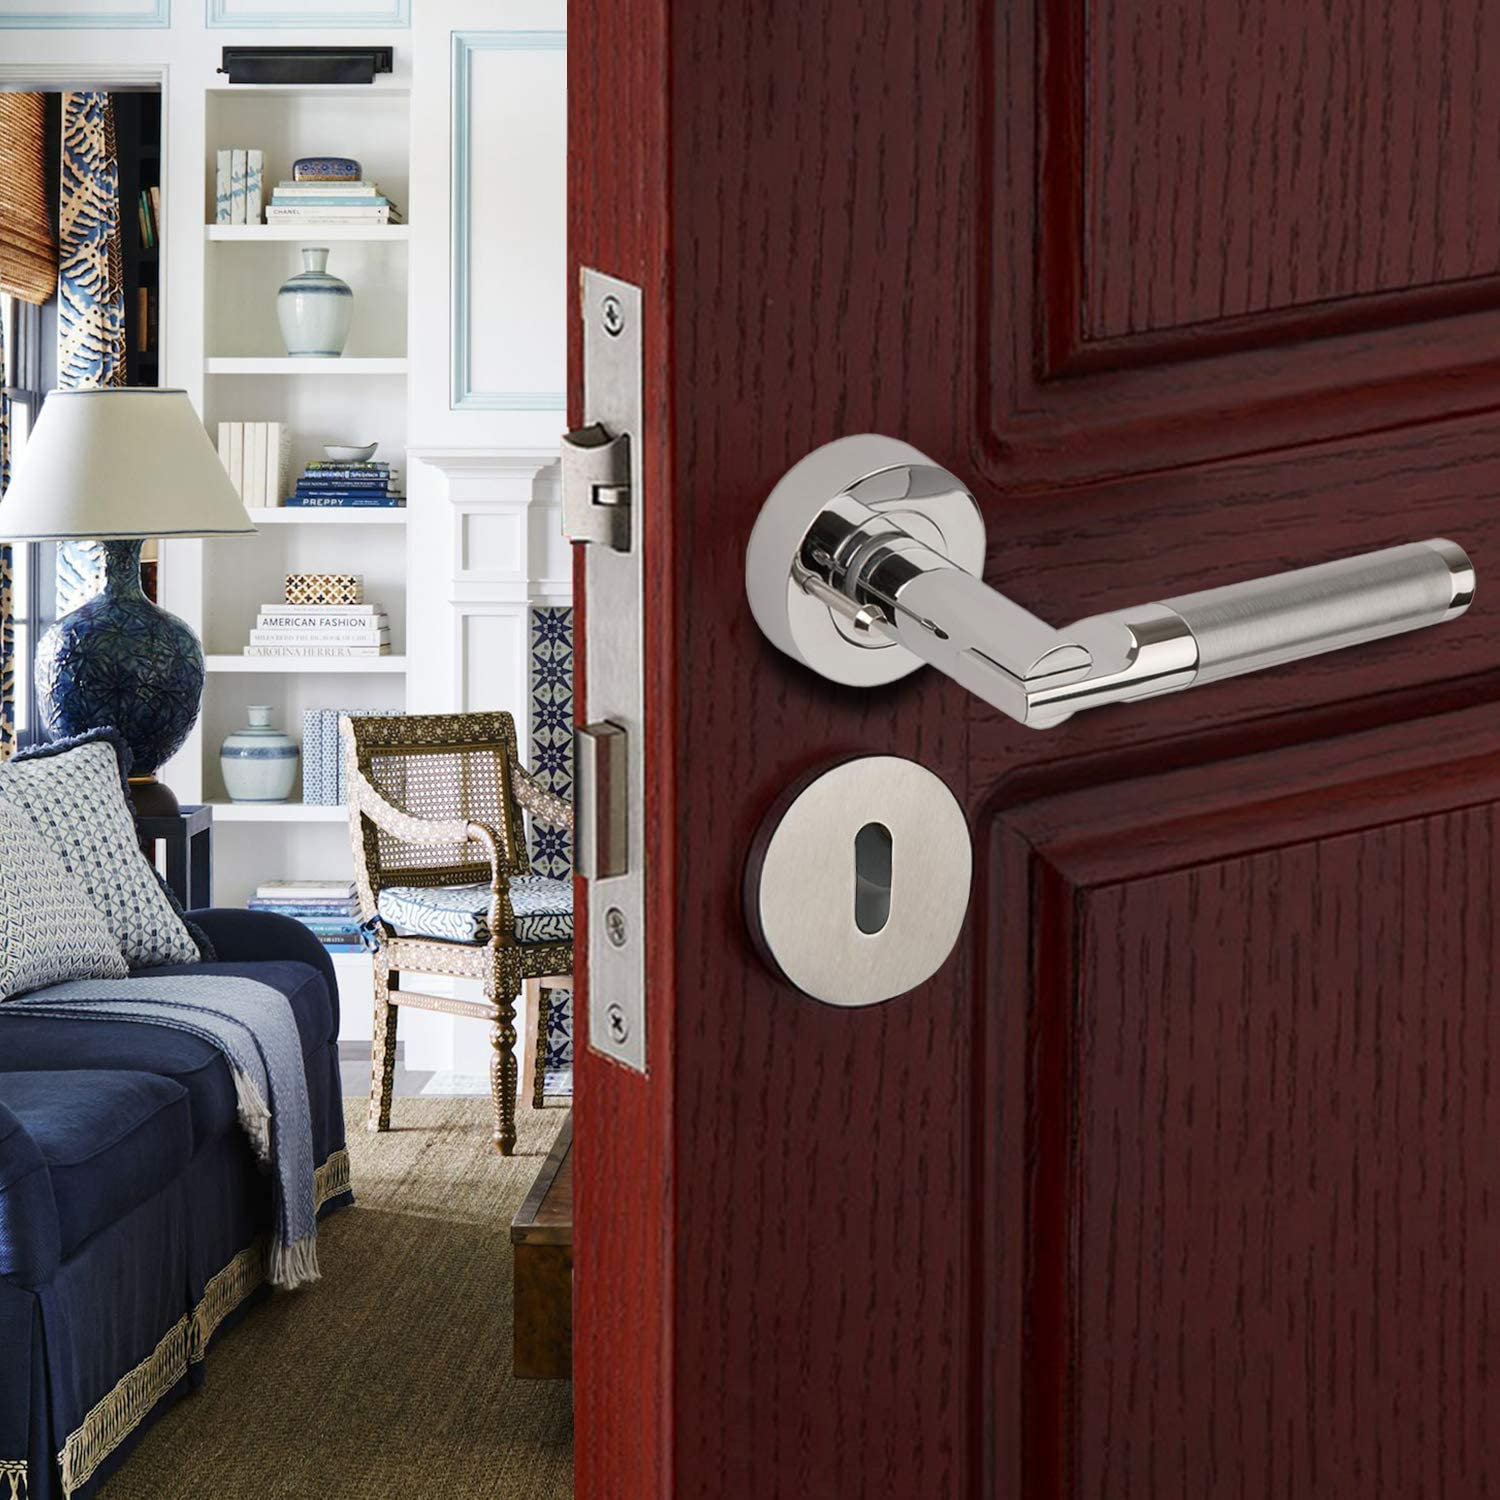 Elegant Internal Round Lever Handle Used as Internal Door Handles with a Standard Latch XFORT/® Door Handle on Rose Regento Lever Door Handles in Dual Chrome Finish Mortice or Bathroom Lock